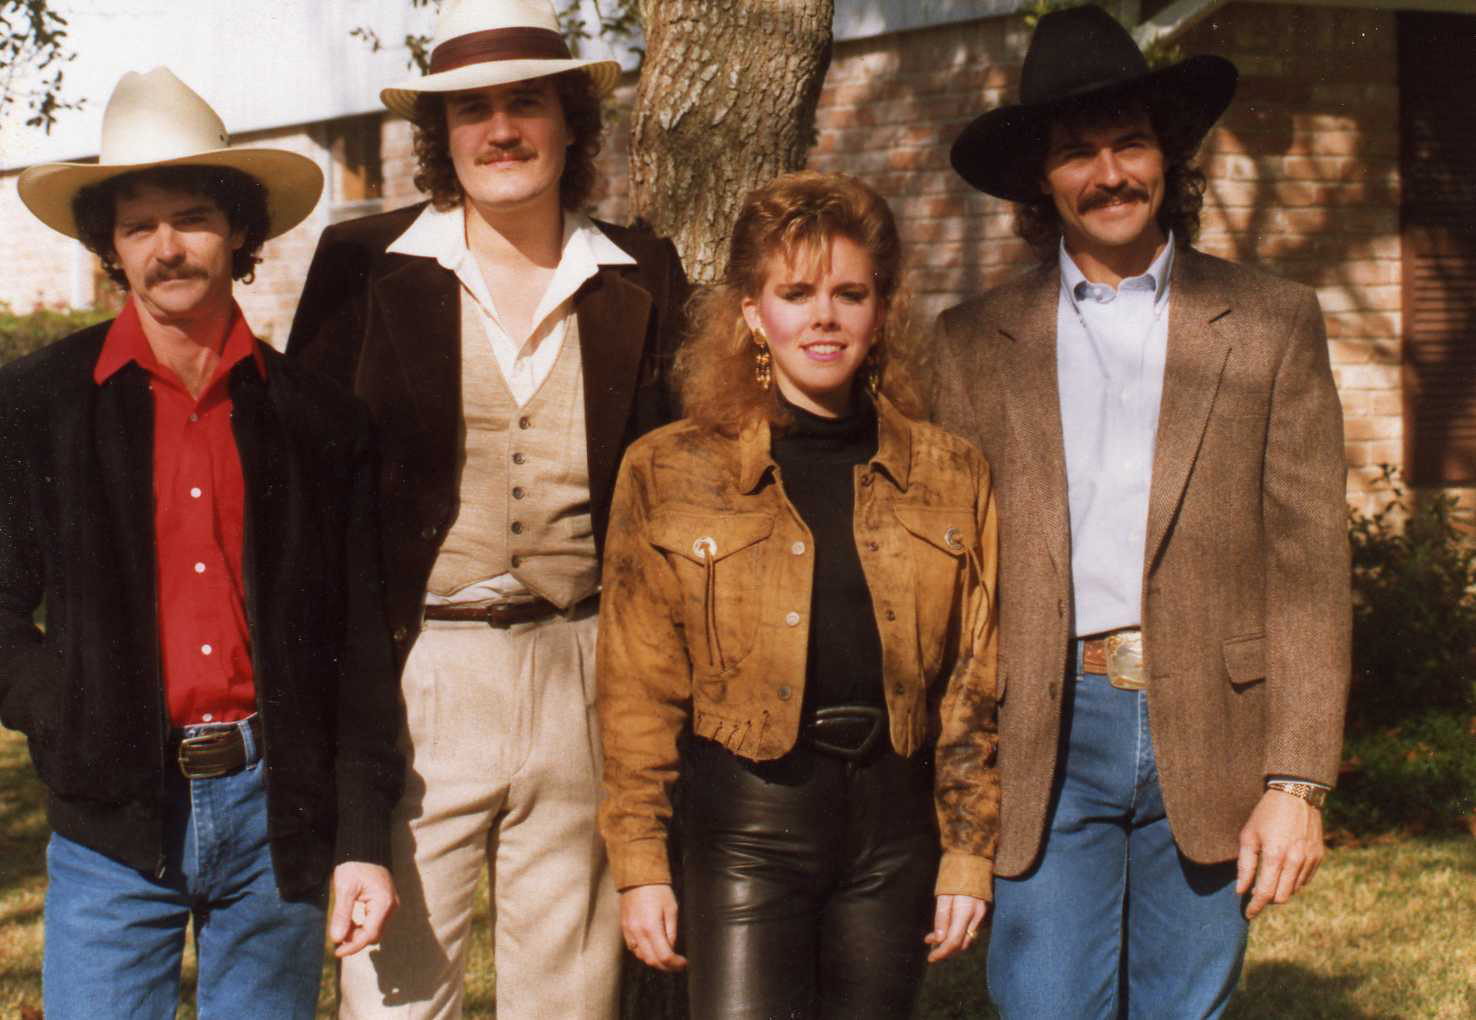 Country road band '88